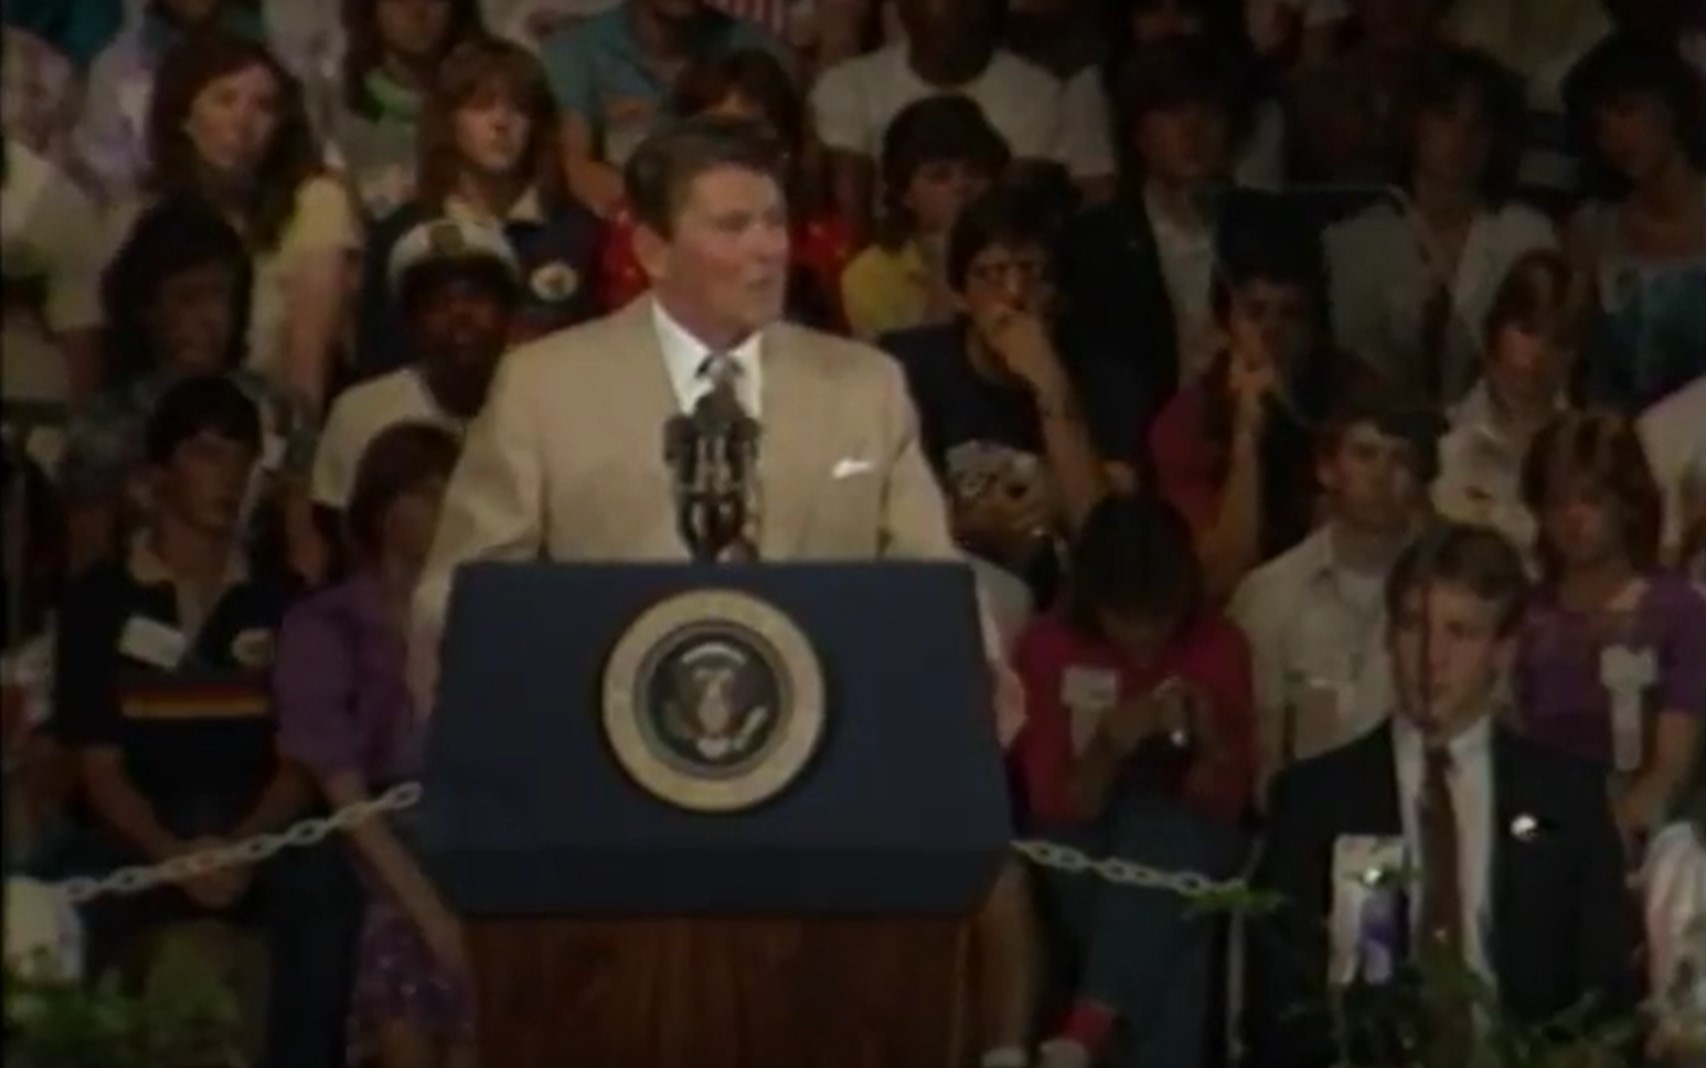 President Ronald Reagan addressing the National Conference of the National Association of Student Councils at my school, Shawnee Mission Northwest High School in Shawnee, Kansas, on June 29, 1982. I attended school there, and was a member of the U.S. Naval Junior Reserve Officer's Training Corps unit based there from 1982 until graduation in 1984.